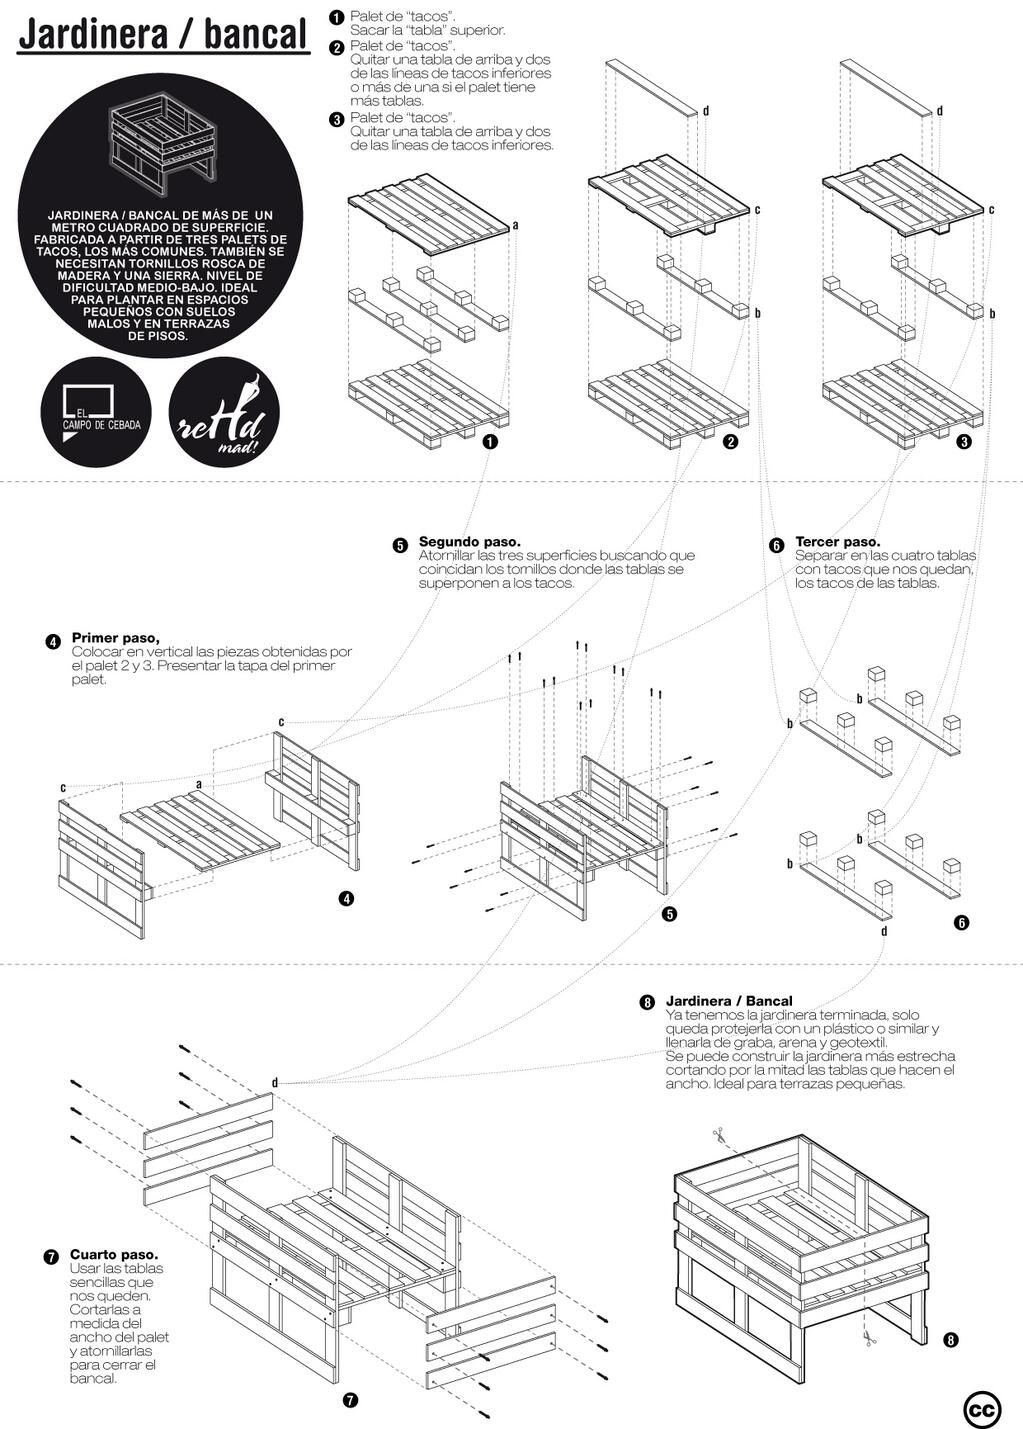 DIY raised garden bed with pallets | Pallet things | Pinterest ...